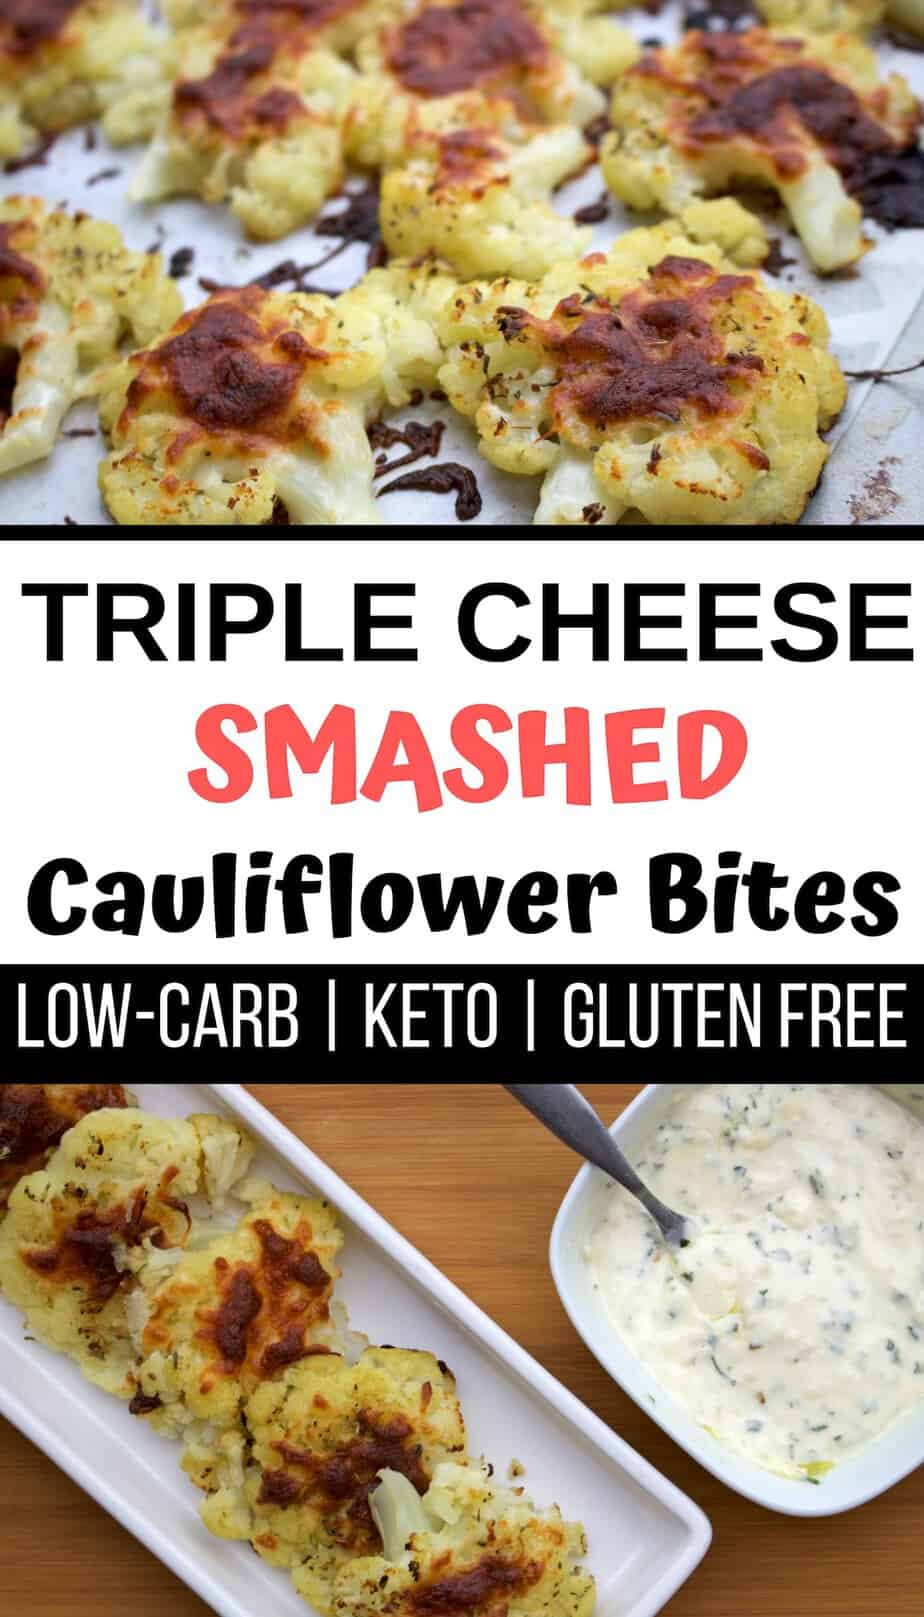 Keto Cauliflower Bites - made with triple cheese, these smashed cauliflower bites are keto, low carb and gluten free